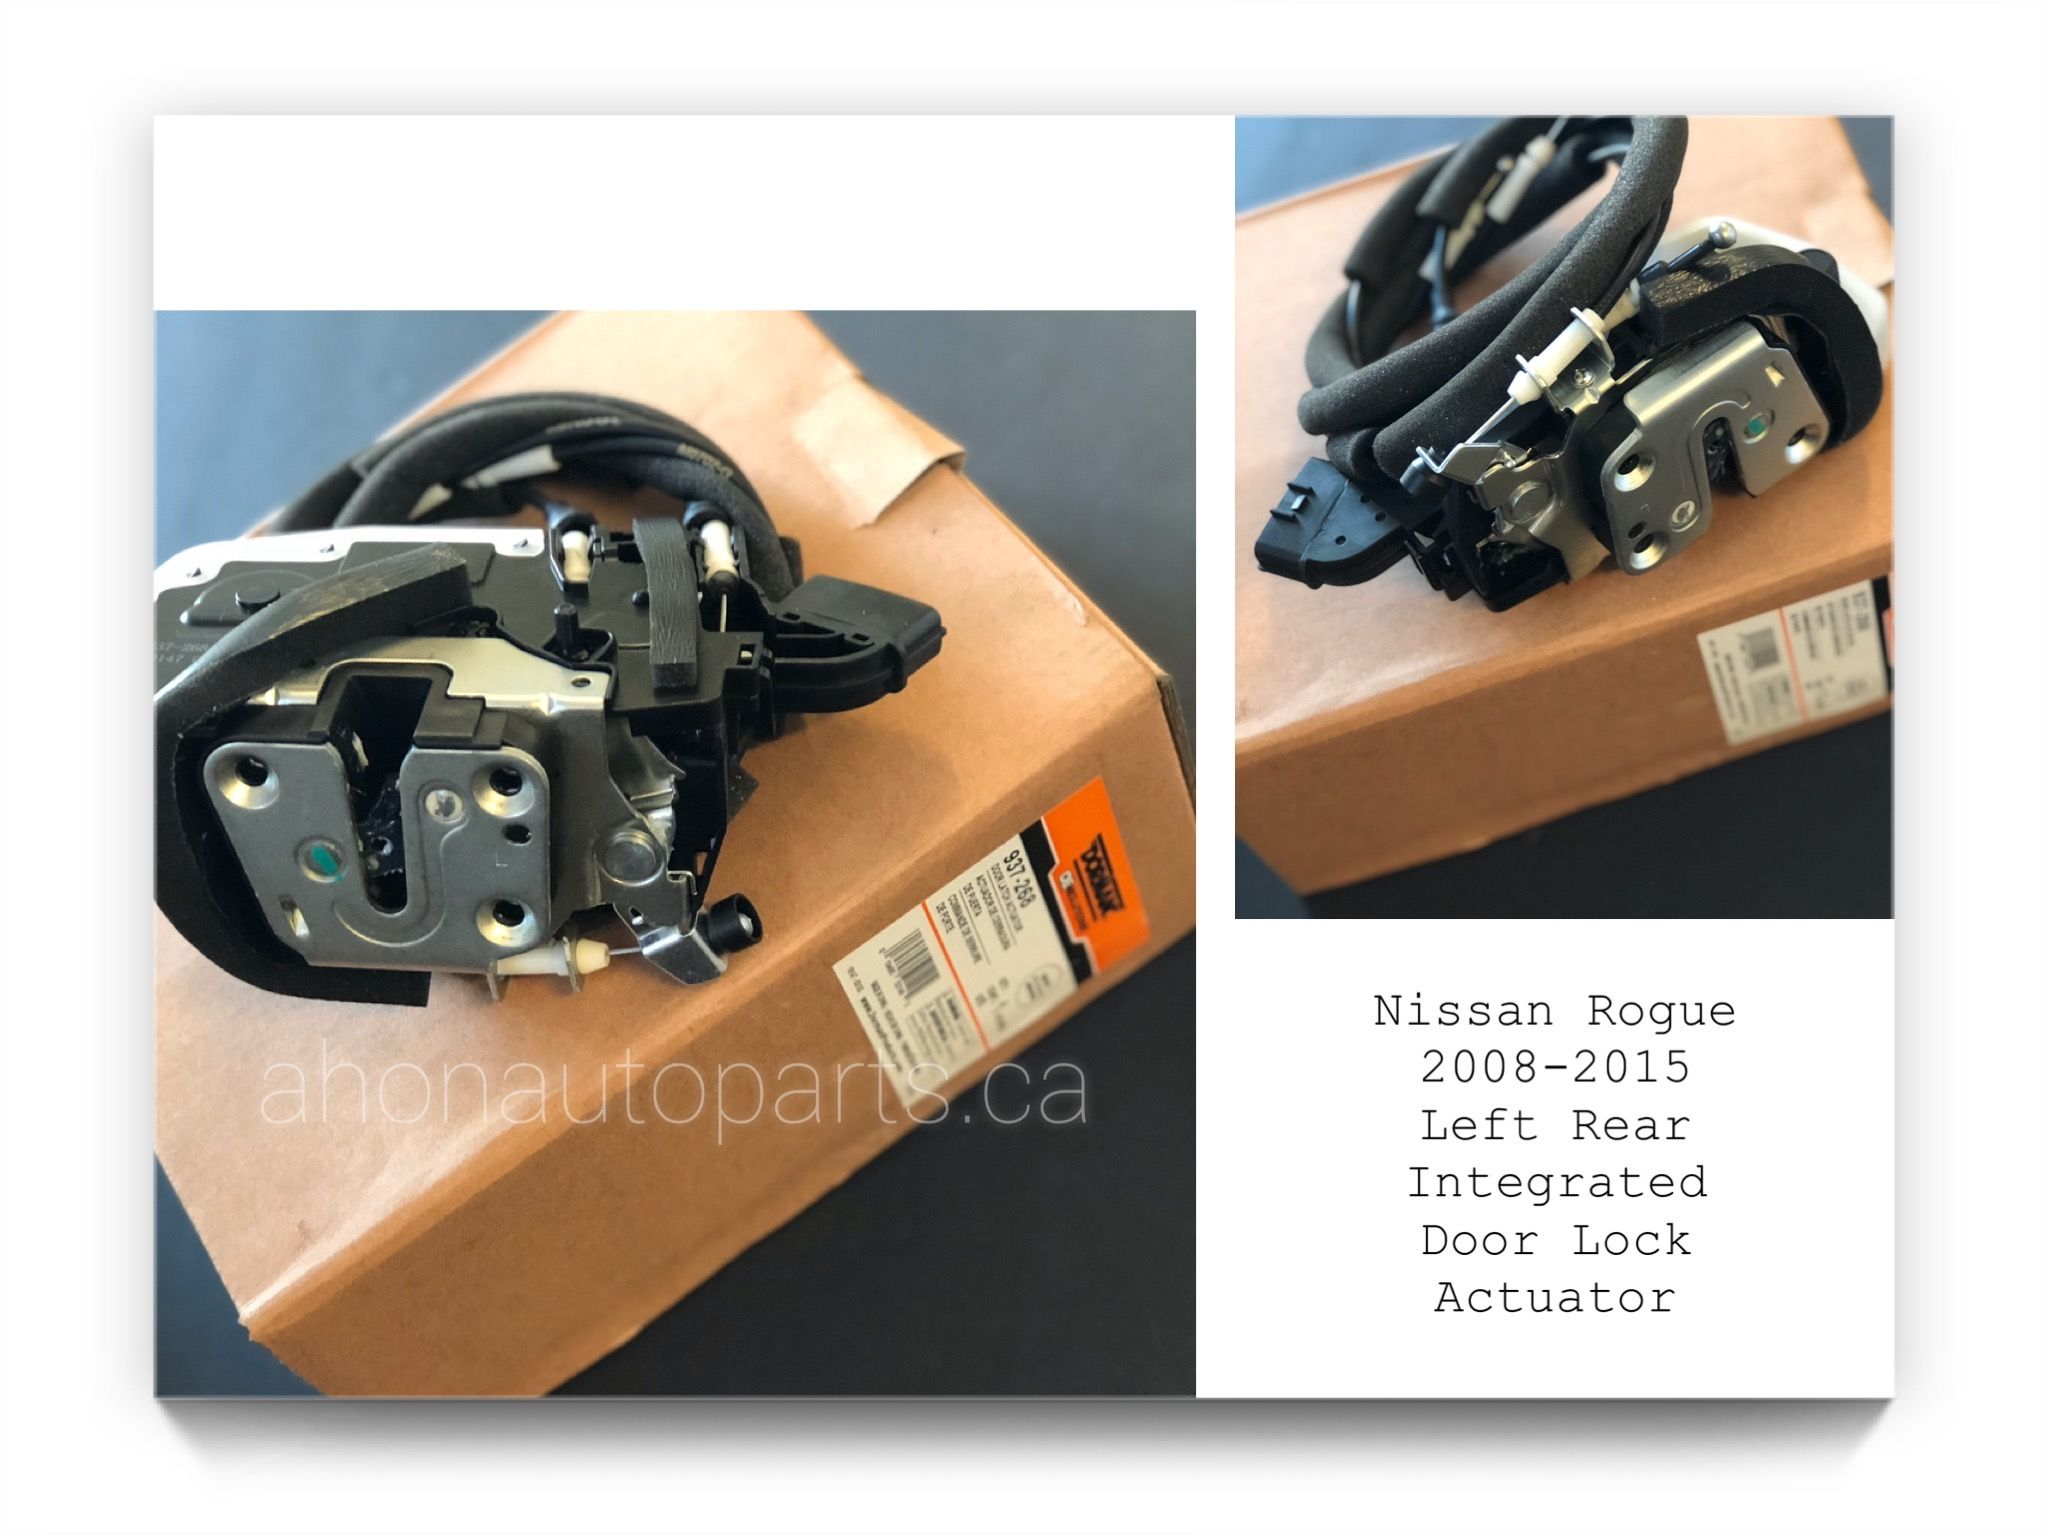 Integrated Door Lock Actuator By Dorman 937 268 Nissan Rogue Select Actuator Nissan Rogue